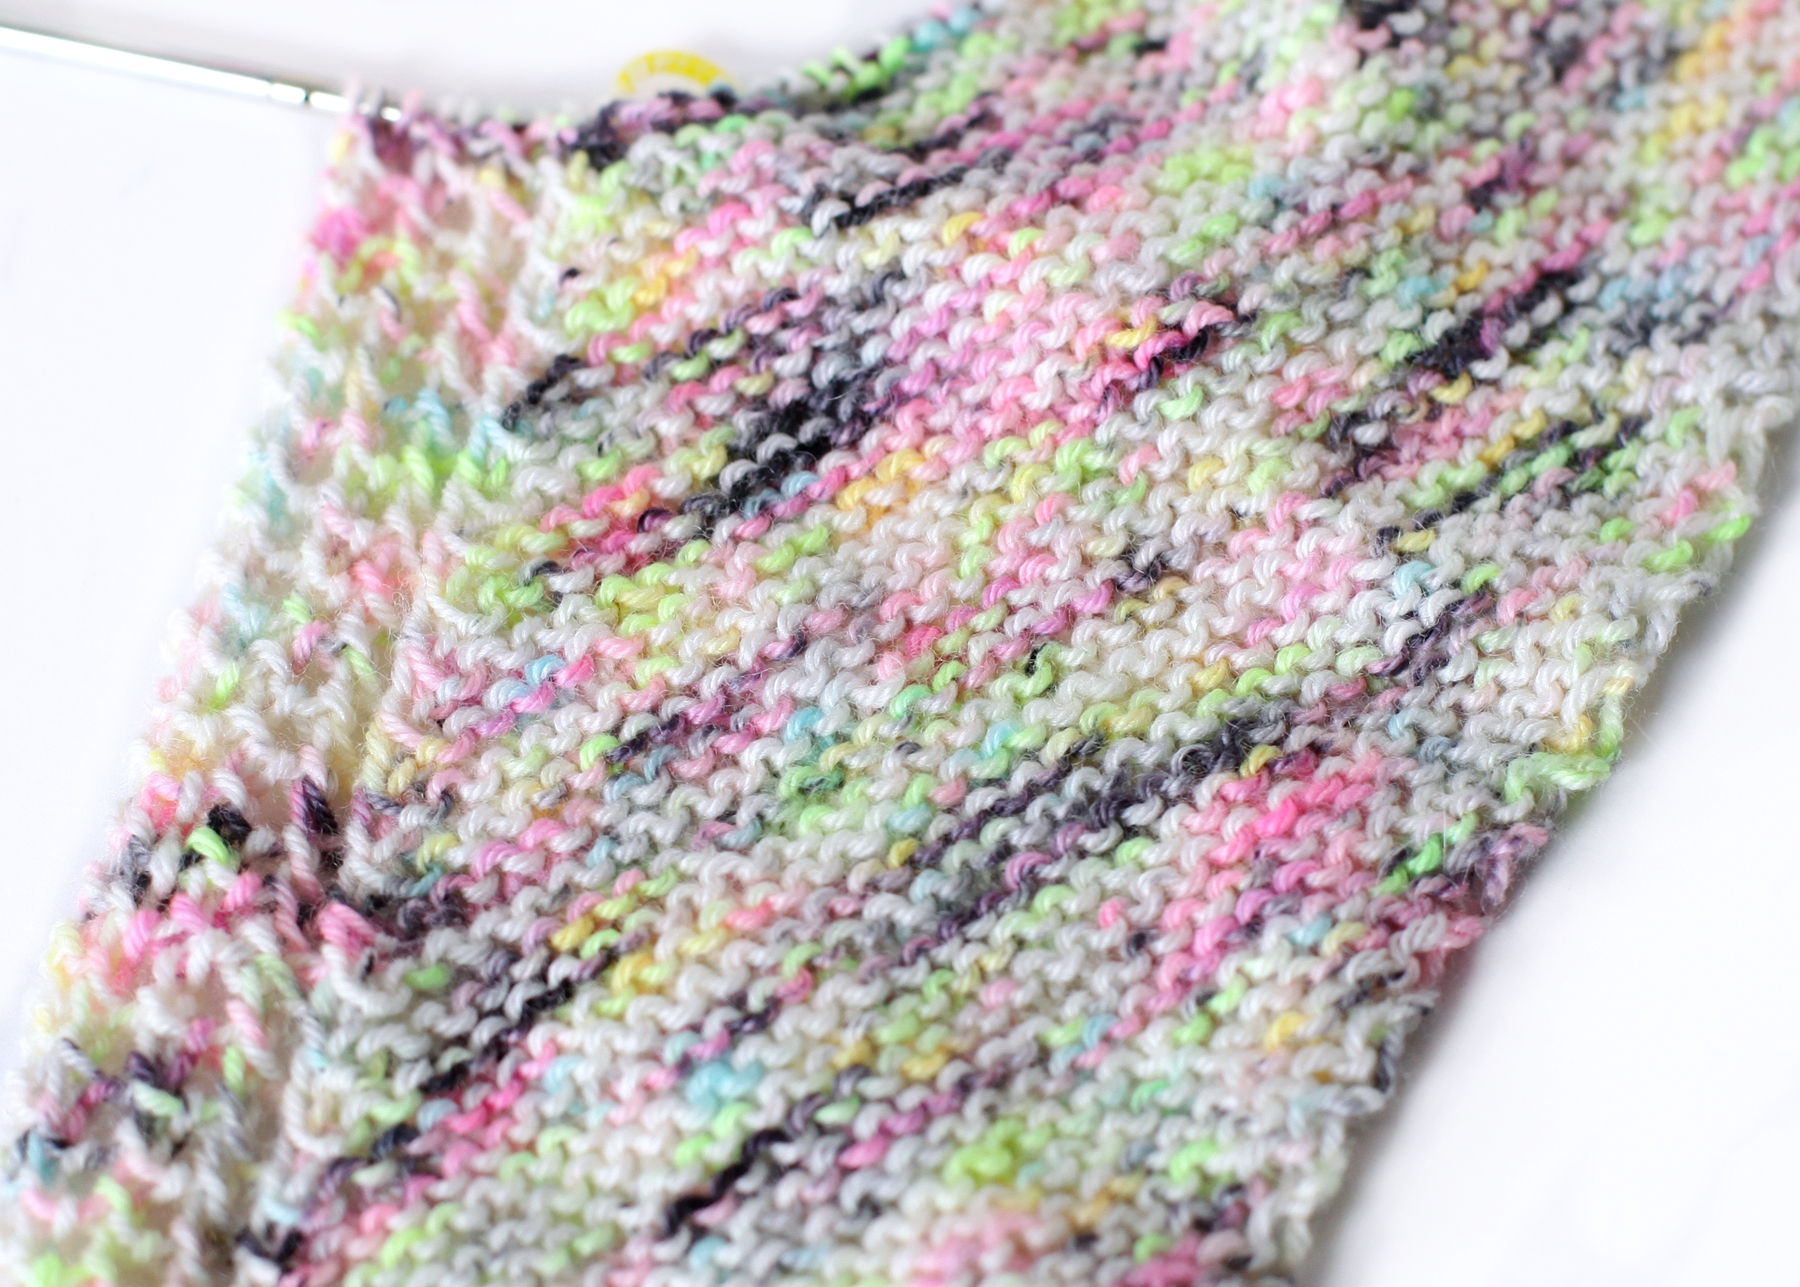 And...yes, I am using sock yarns to knit yet another scarf. Here's FIZZ BANG in my WIP Trillian scarf